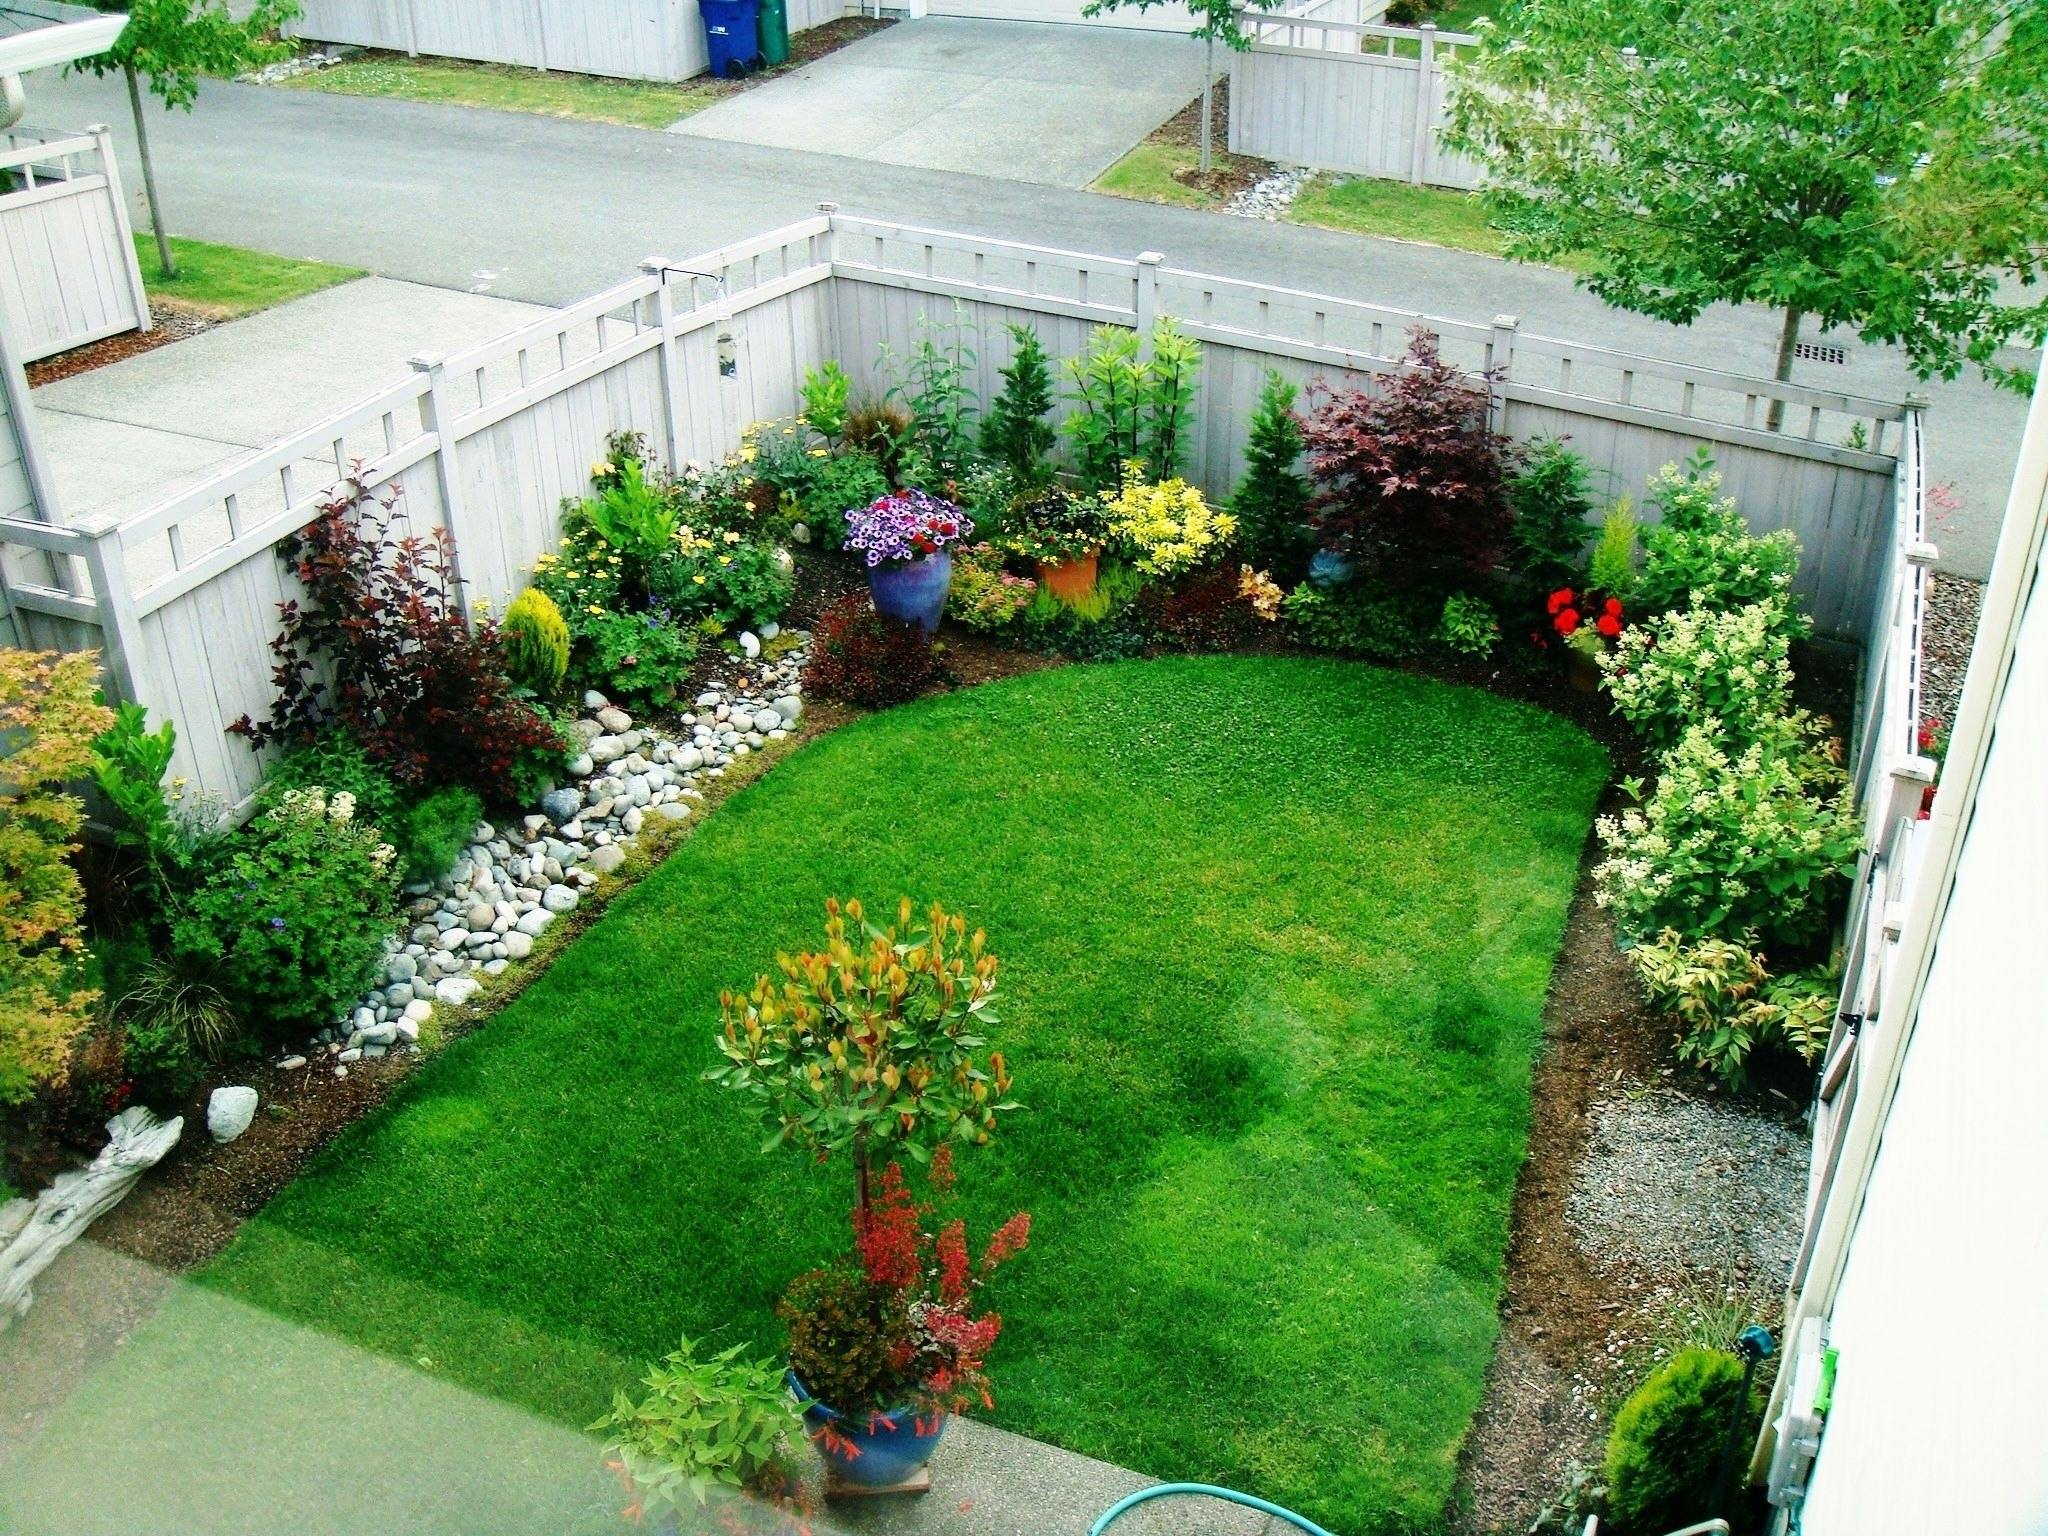 Landscaping Ideas For A Corner Lot Beautiful Corner Landscaping inside Corner Backyard Landscaping Ideas